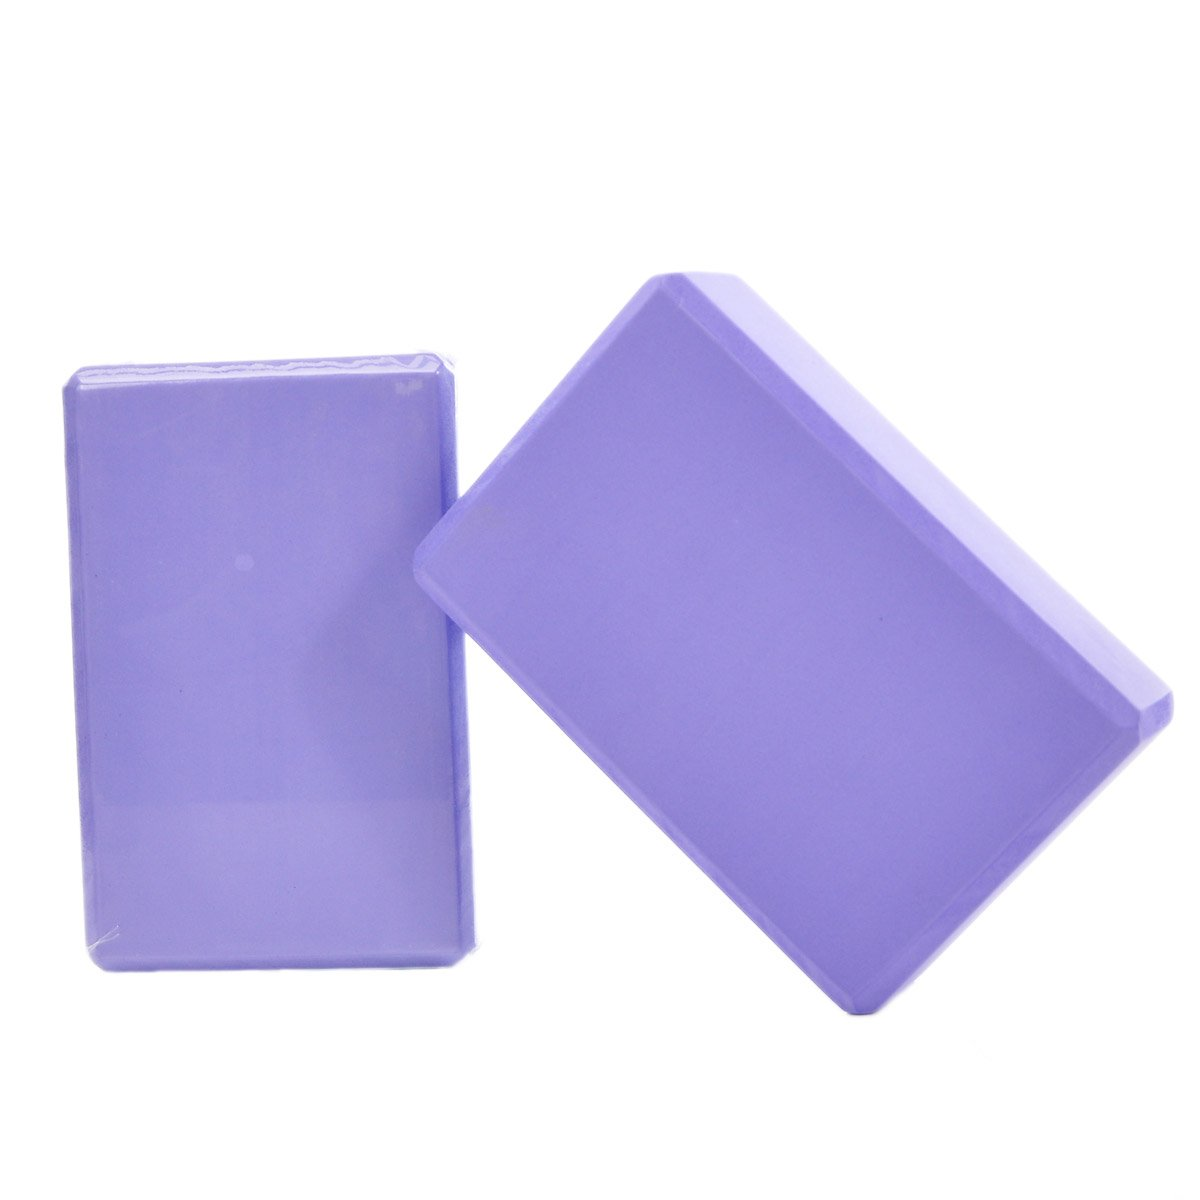 W&B Lion Yoga Blocks 2 Pack Available in 3 Colors Large Size for Balance and Stability in Yoga Poses